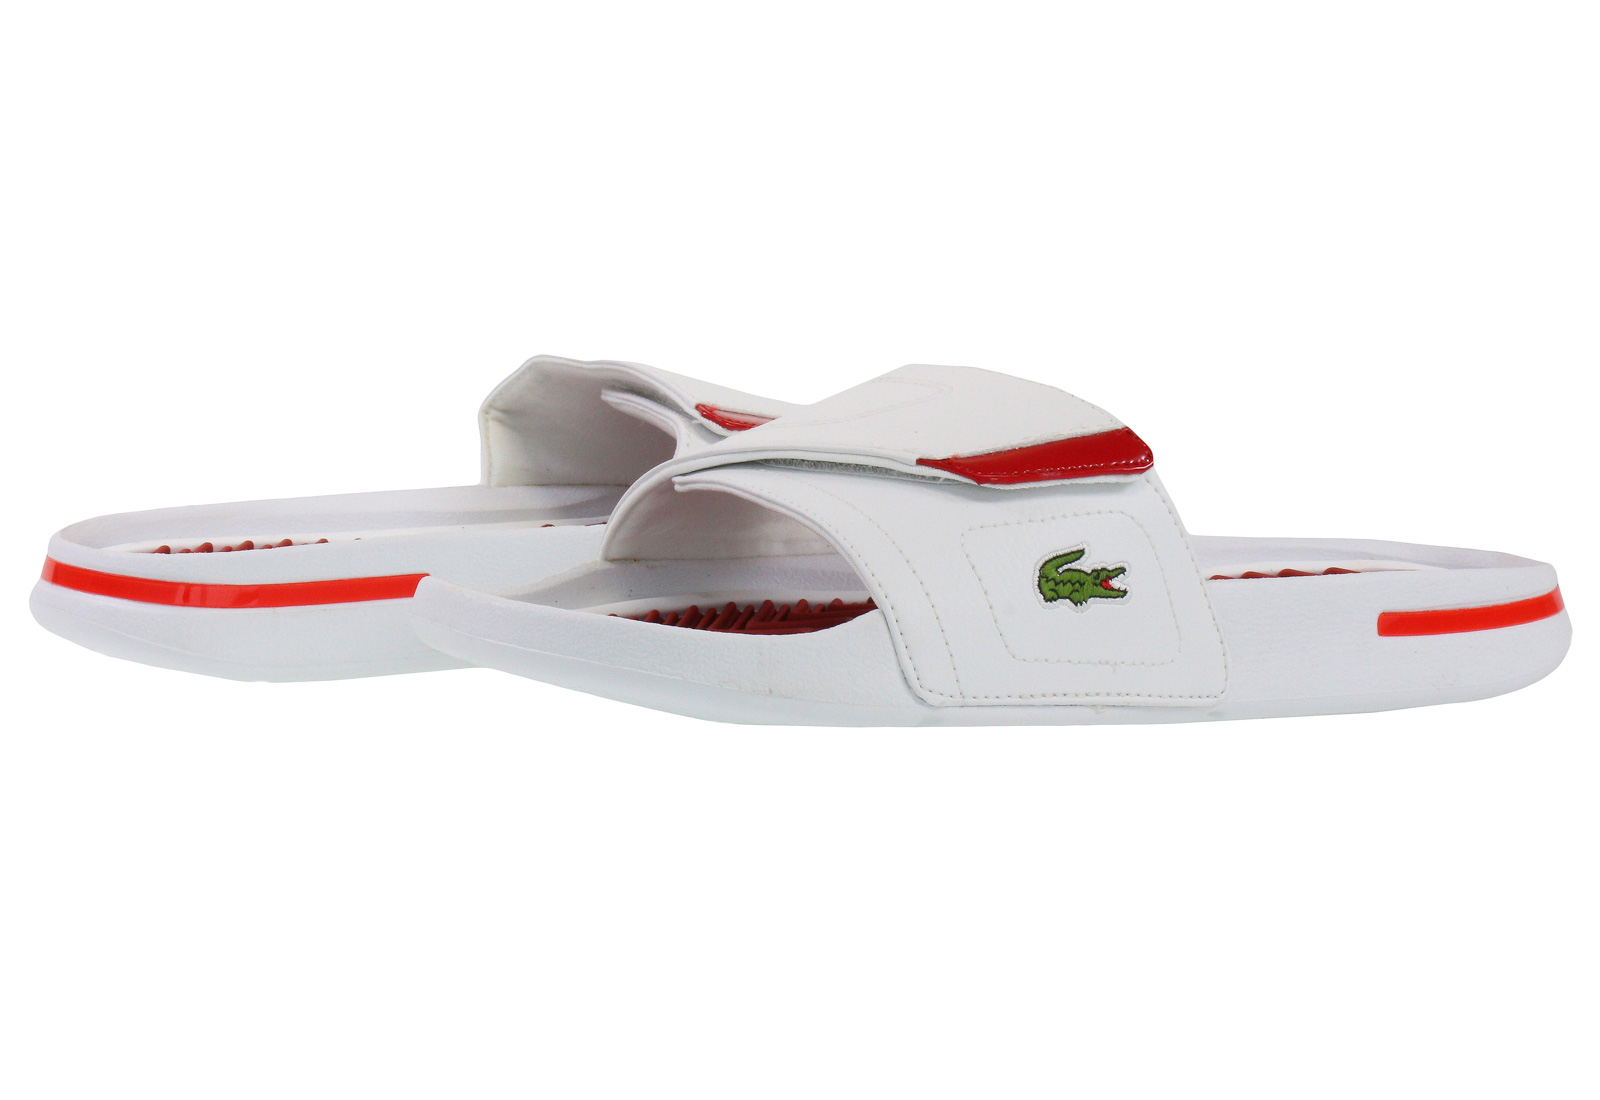 172f13aecc7e Lacoste Slippers - Molitor - 13S-4038-286 - Online shop for sneakers ...